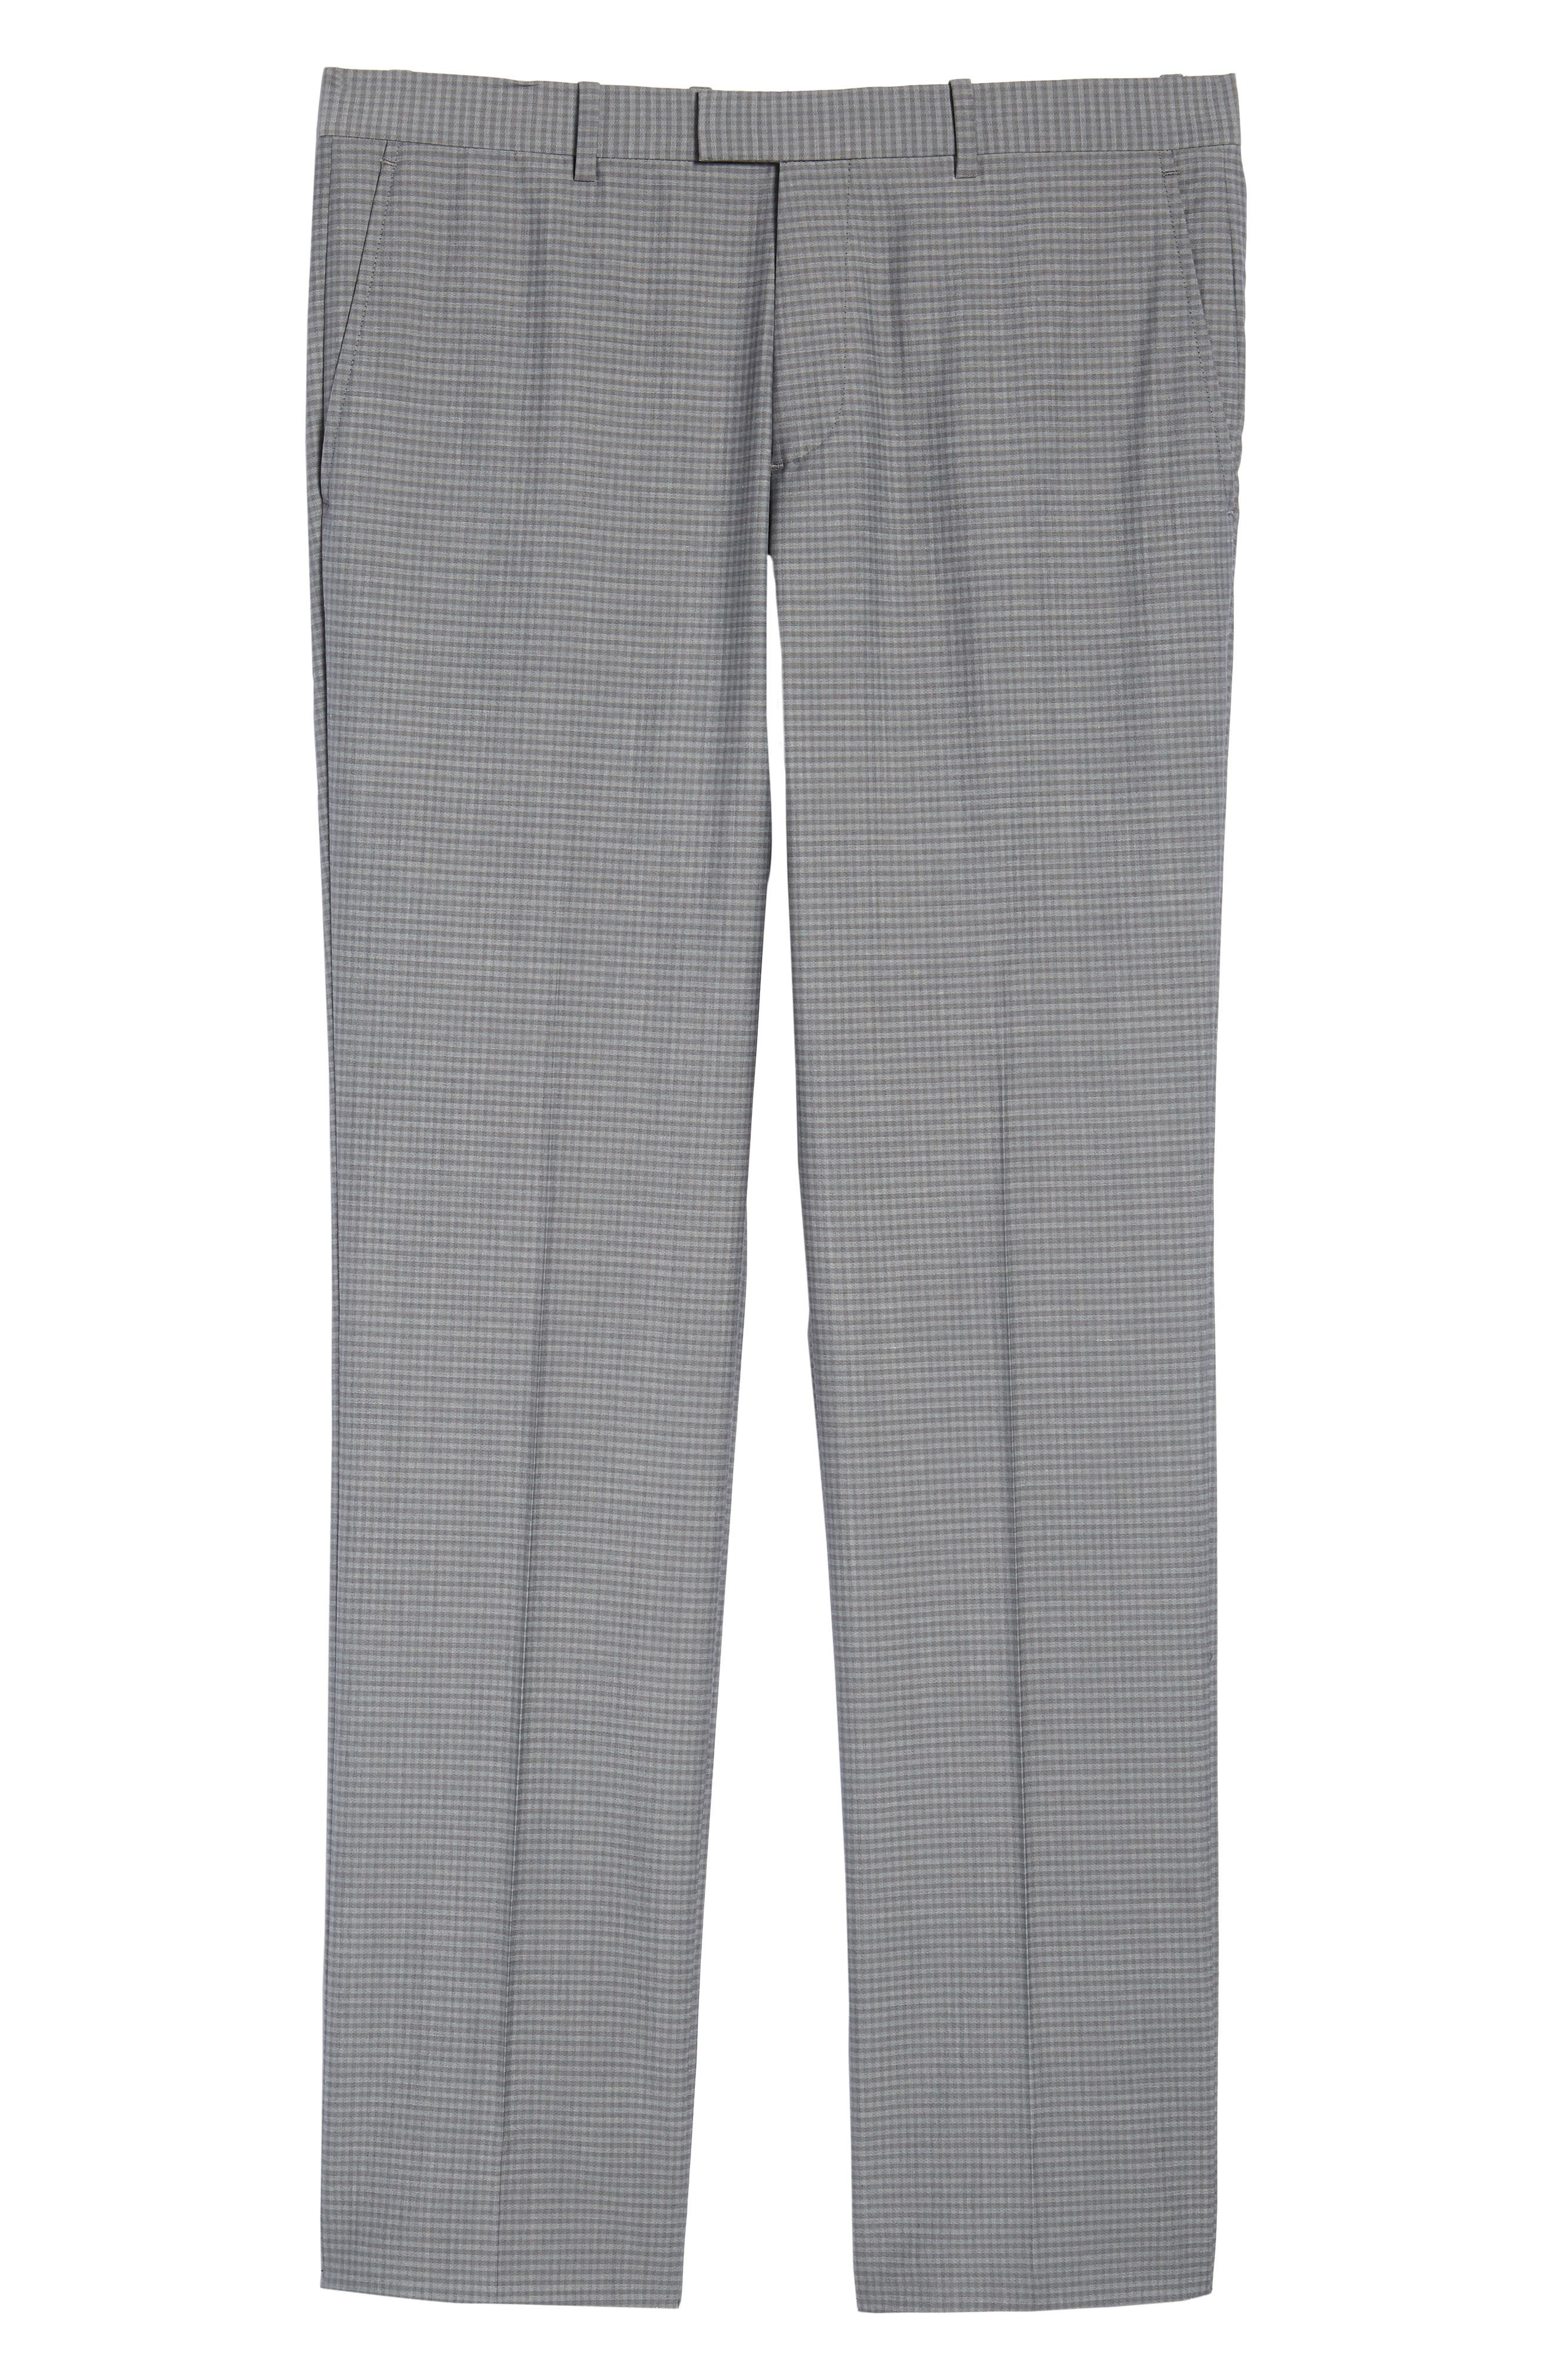 Marlo Flat Front Check Wool Trousers,                             Alternate thumbnail 6, color,                             023